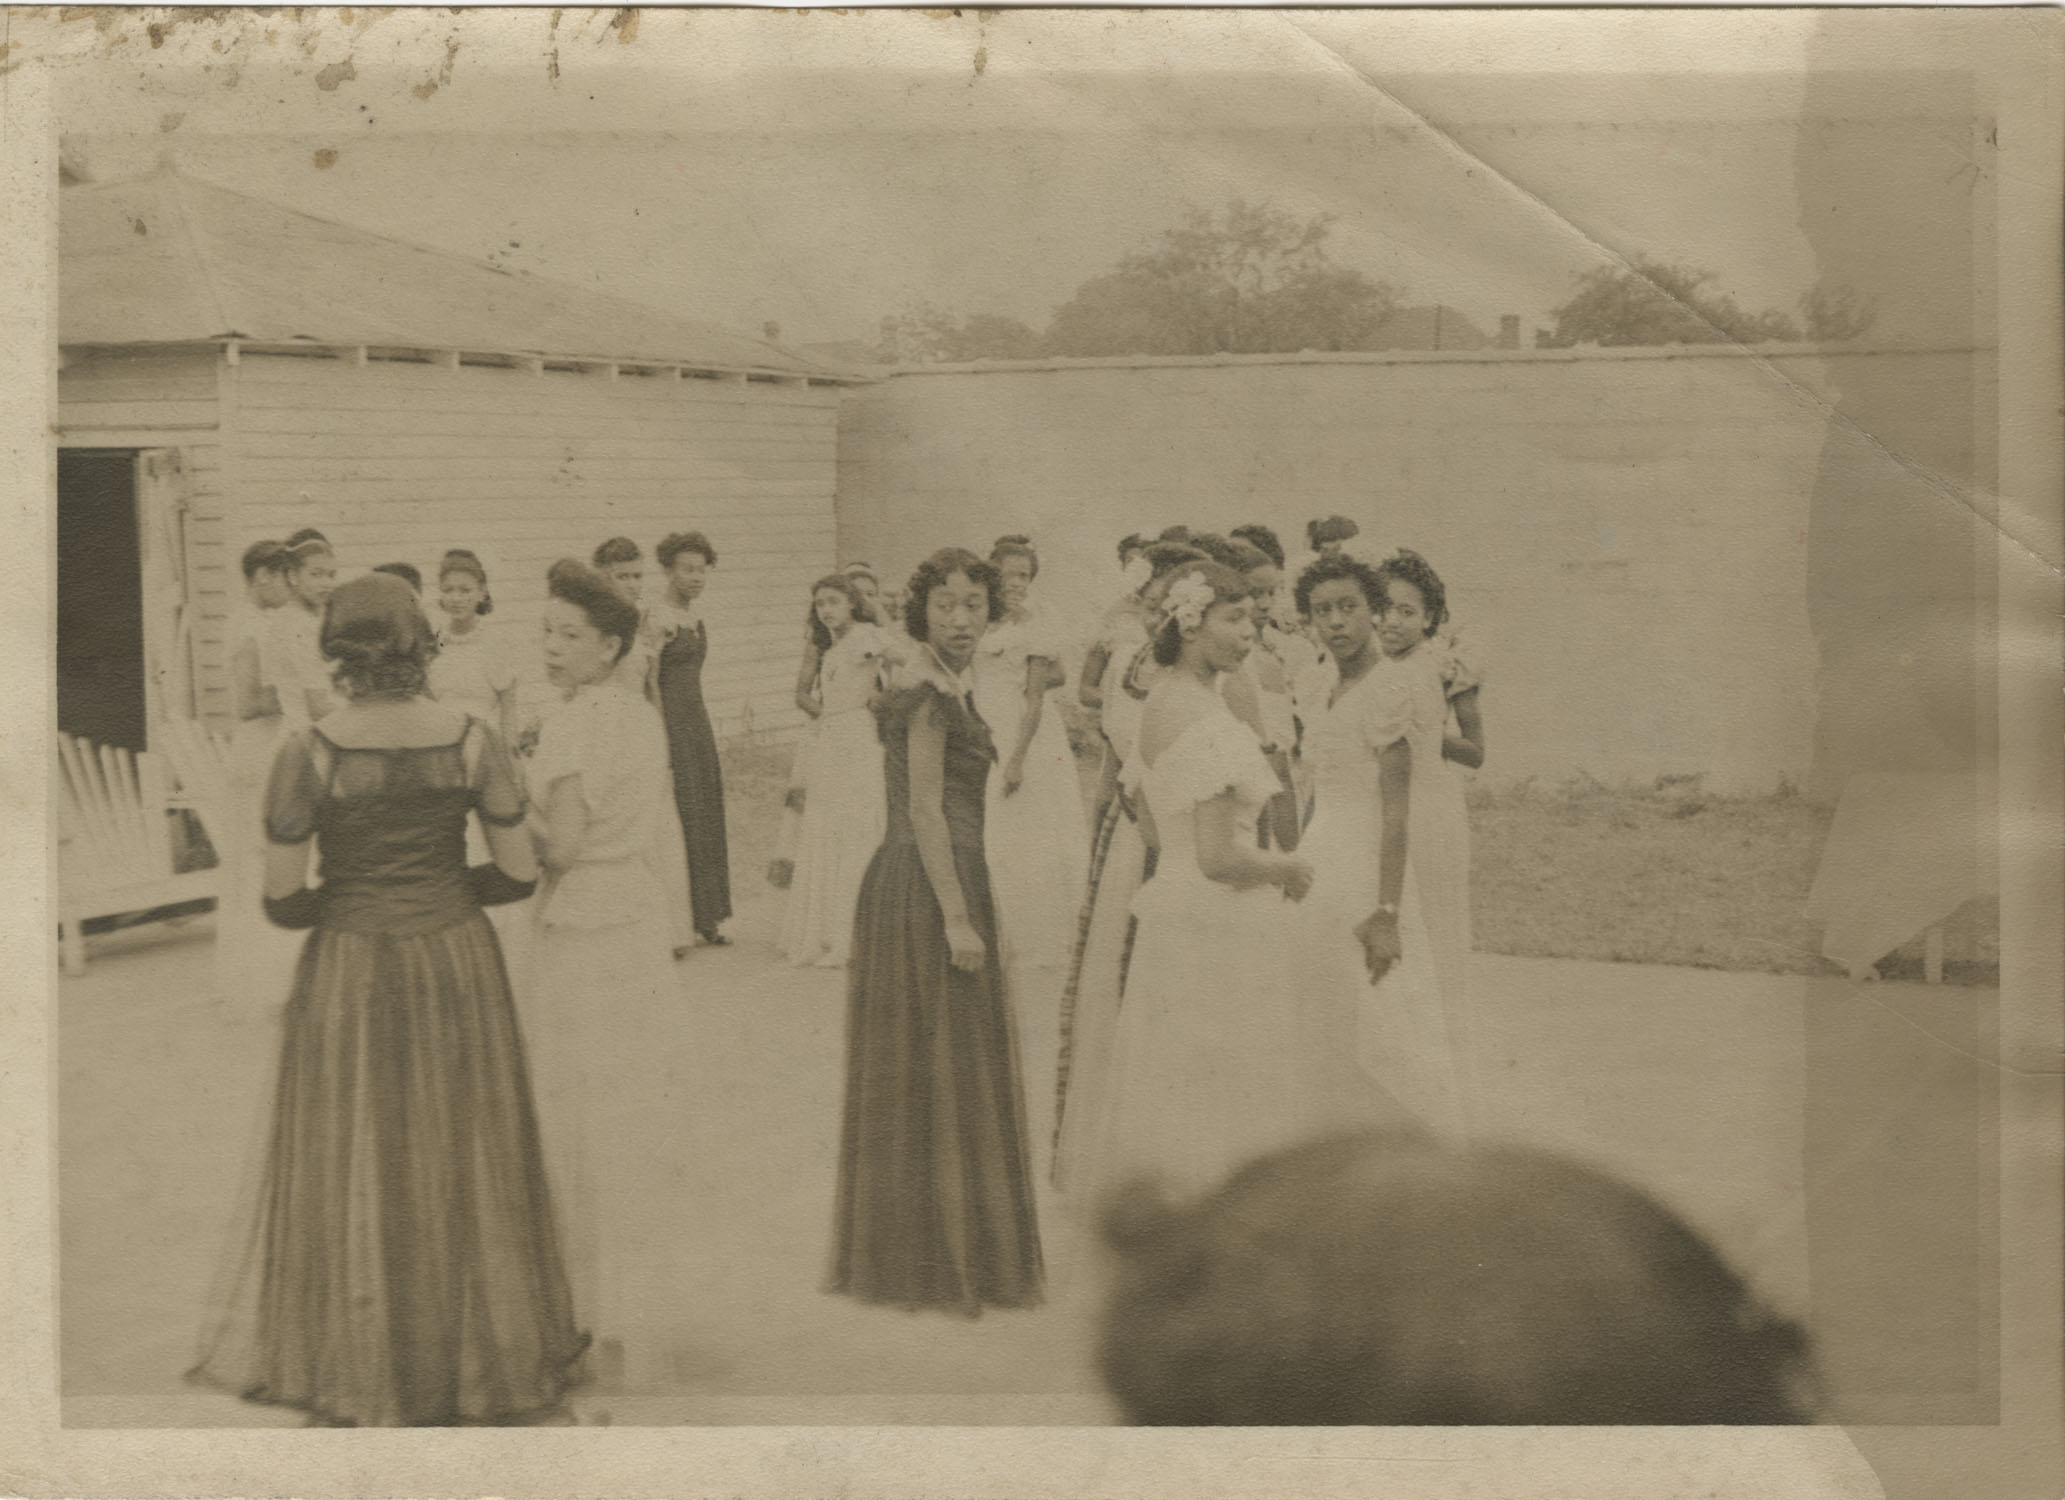 Debutantes Mingling in a Courtyard, 1948